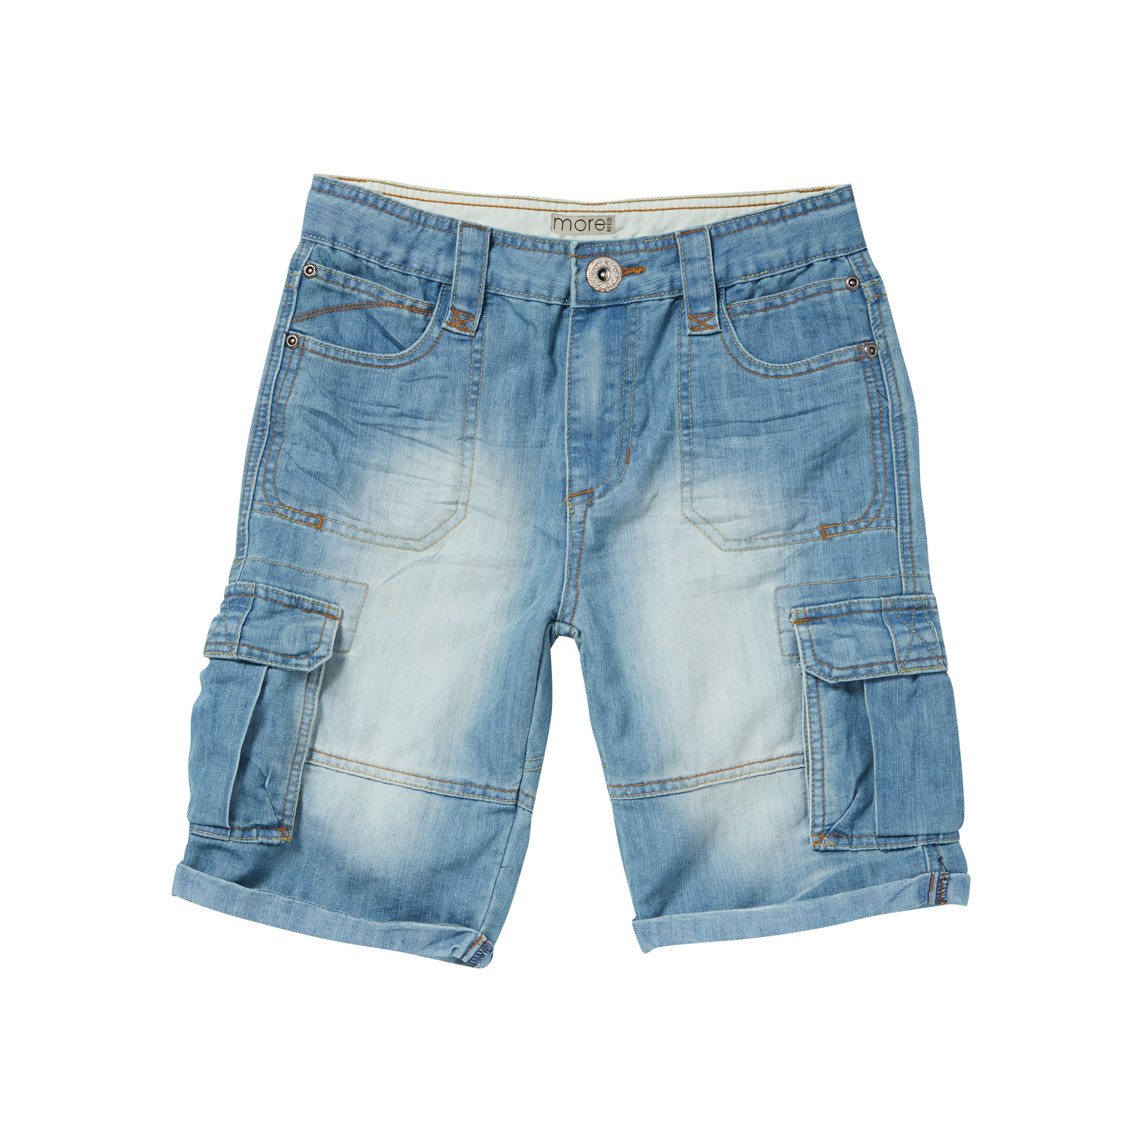 Free shipping BOTH ways on Shorts, Boys, Cargo Shorts, from our vast selection of styles. Fast delivery, and 24/7/ real-person service with a smile. Click or call